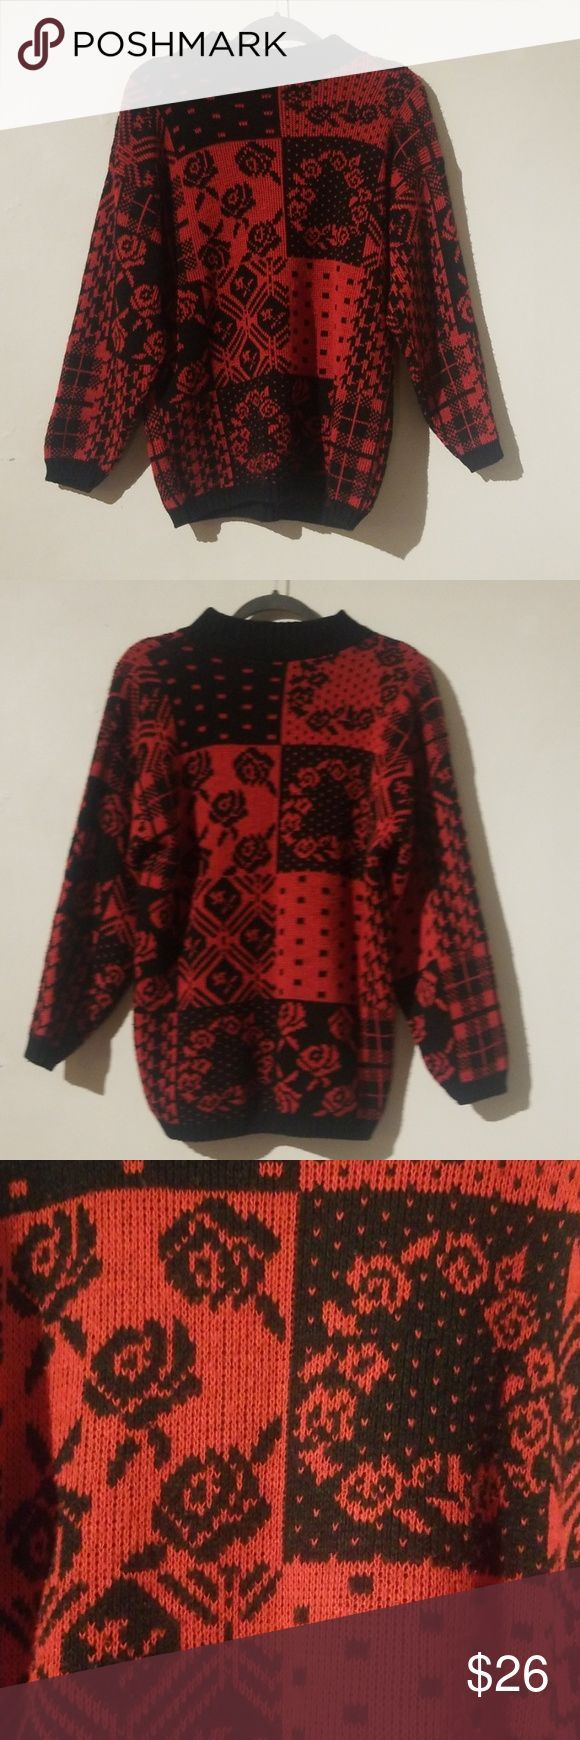 Vintage 90s Separate Issue Rose And Vine Sweater 80s Or 90s Vintage In Great Vi 2019 Vintage Sweaters Sweaters Vintage